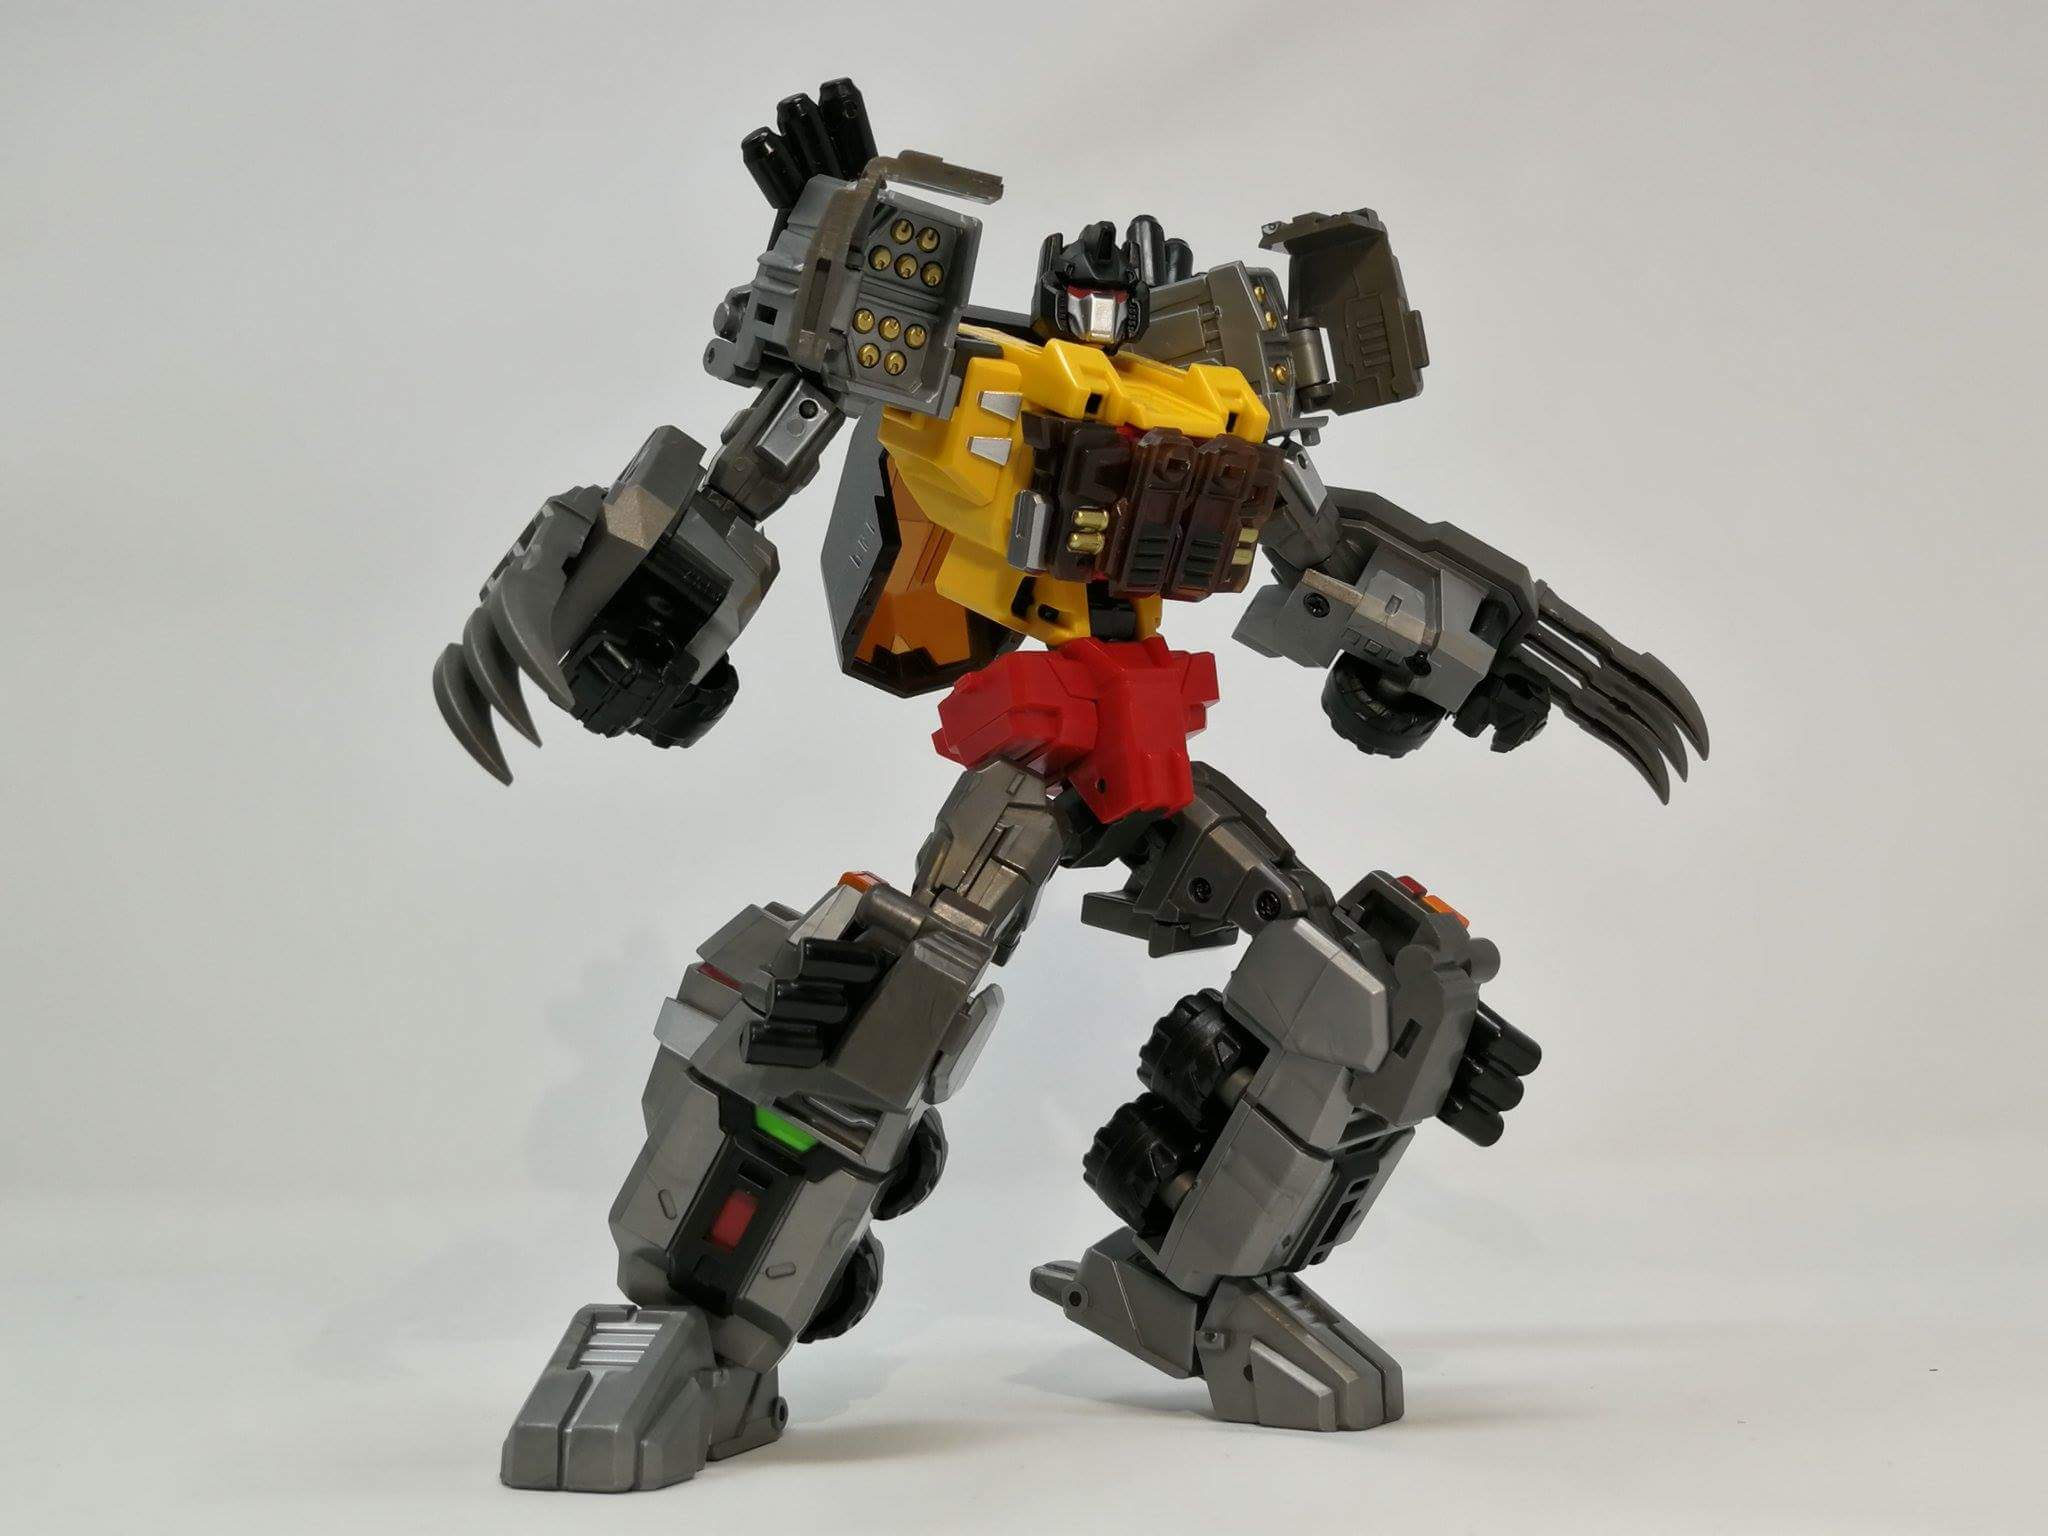 [FansProject] Produit Tiers - Jouets LER (Lost Exo Realm) - aka Dinobots - Page 3 YoCohoHn_o